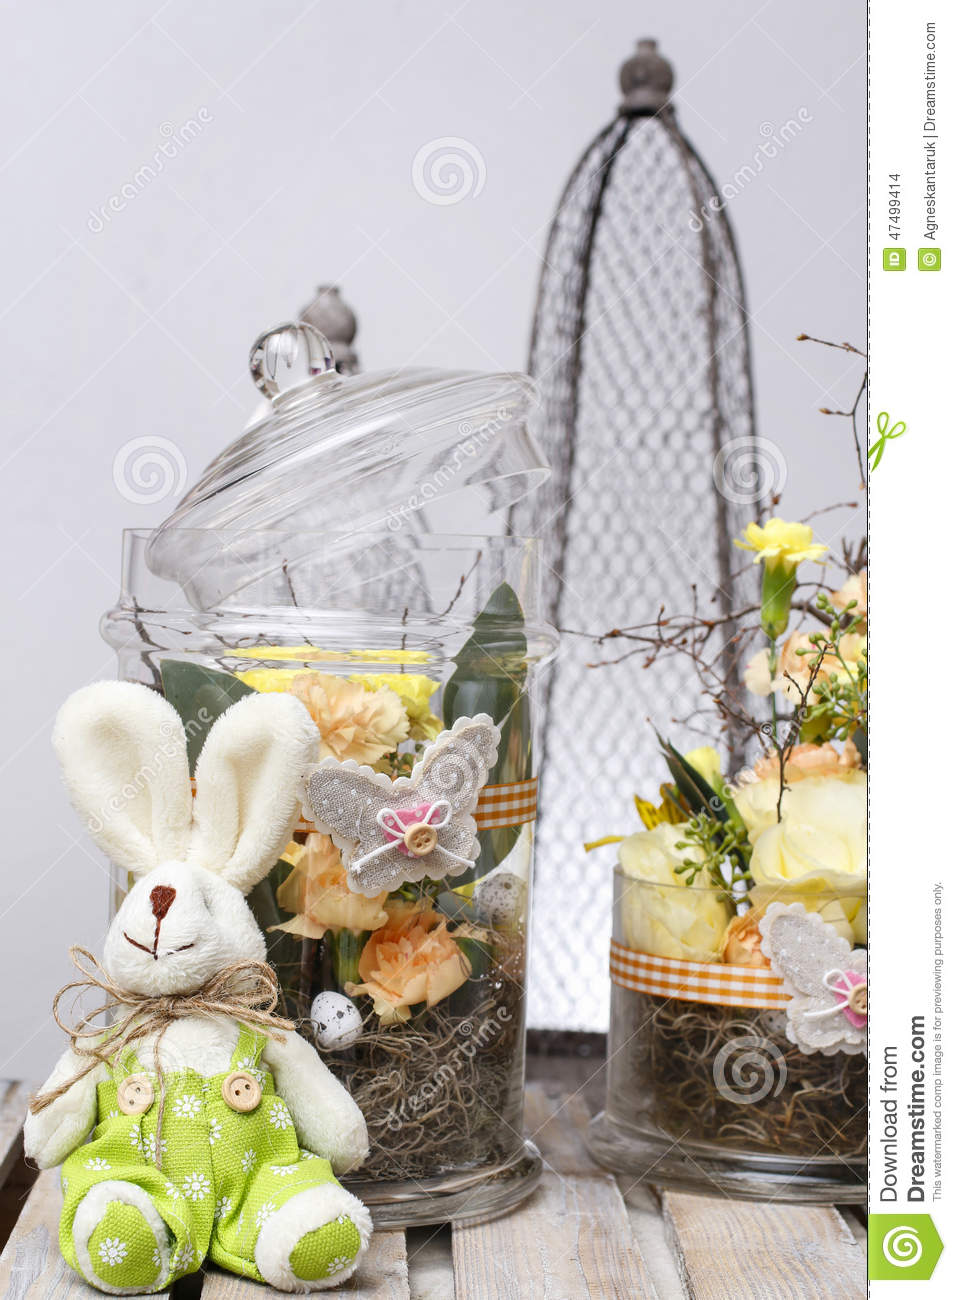 D coration de p ques photo stock image 47499414 - Decoration de paques ...